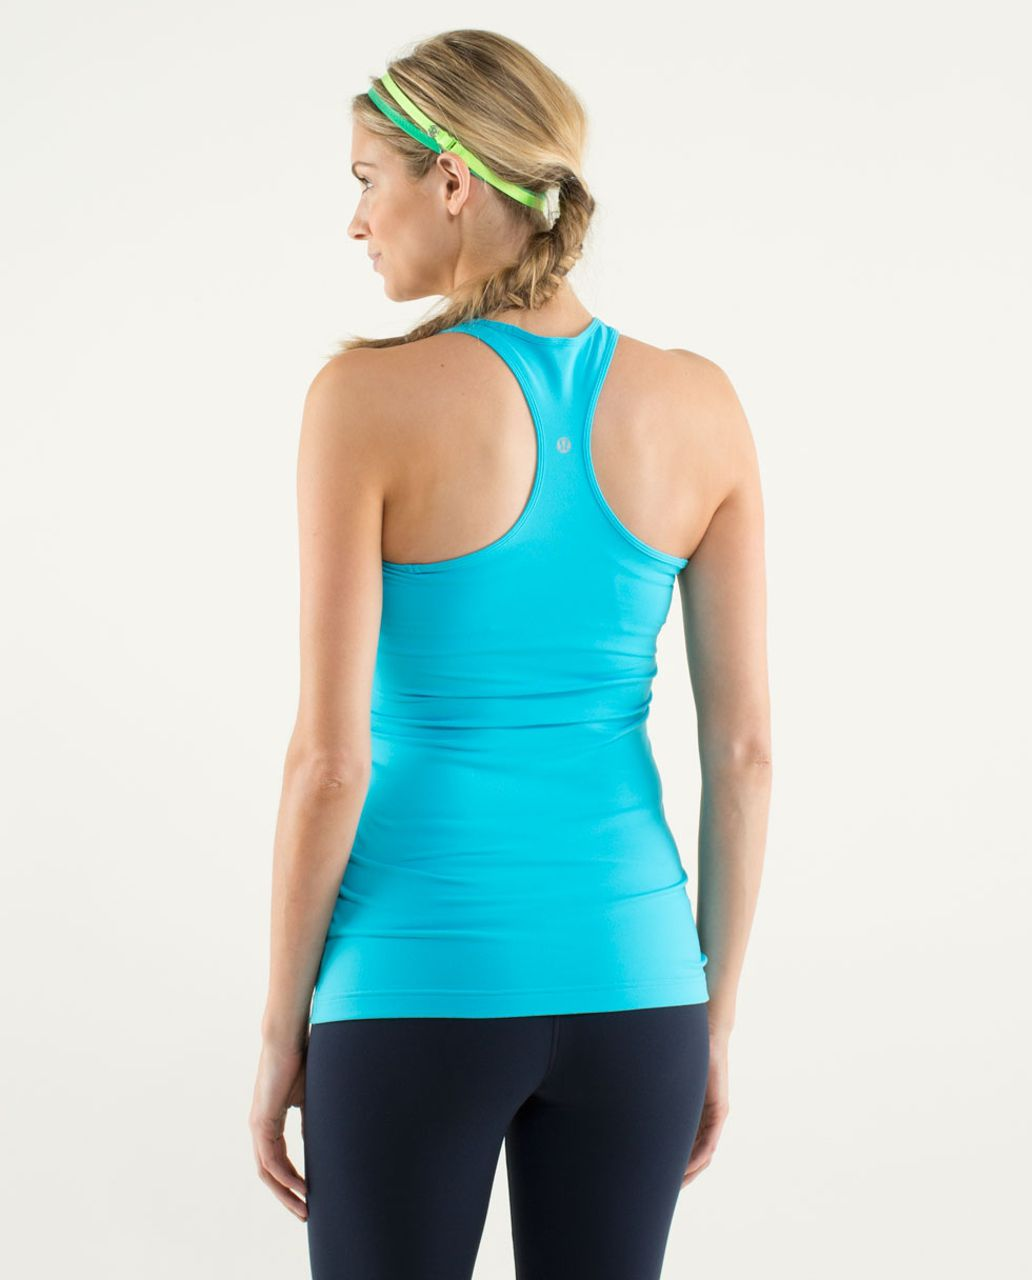 Lululemon Cool Racerback (First Release) - Spry Blue